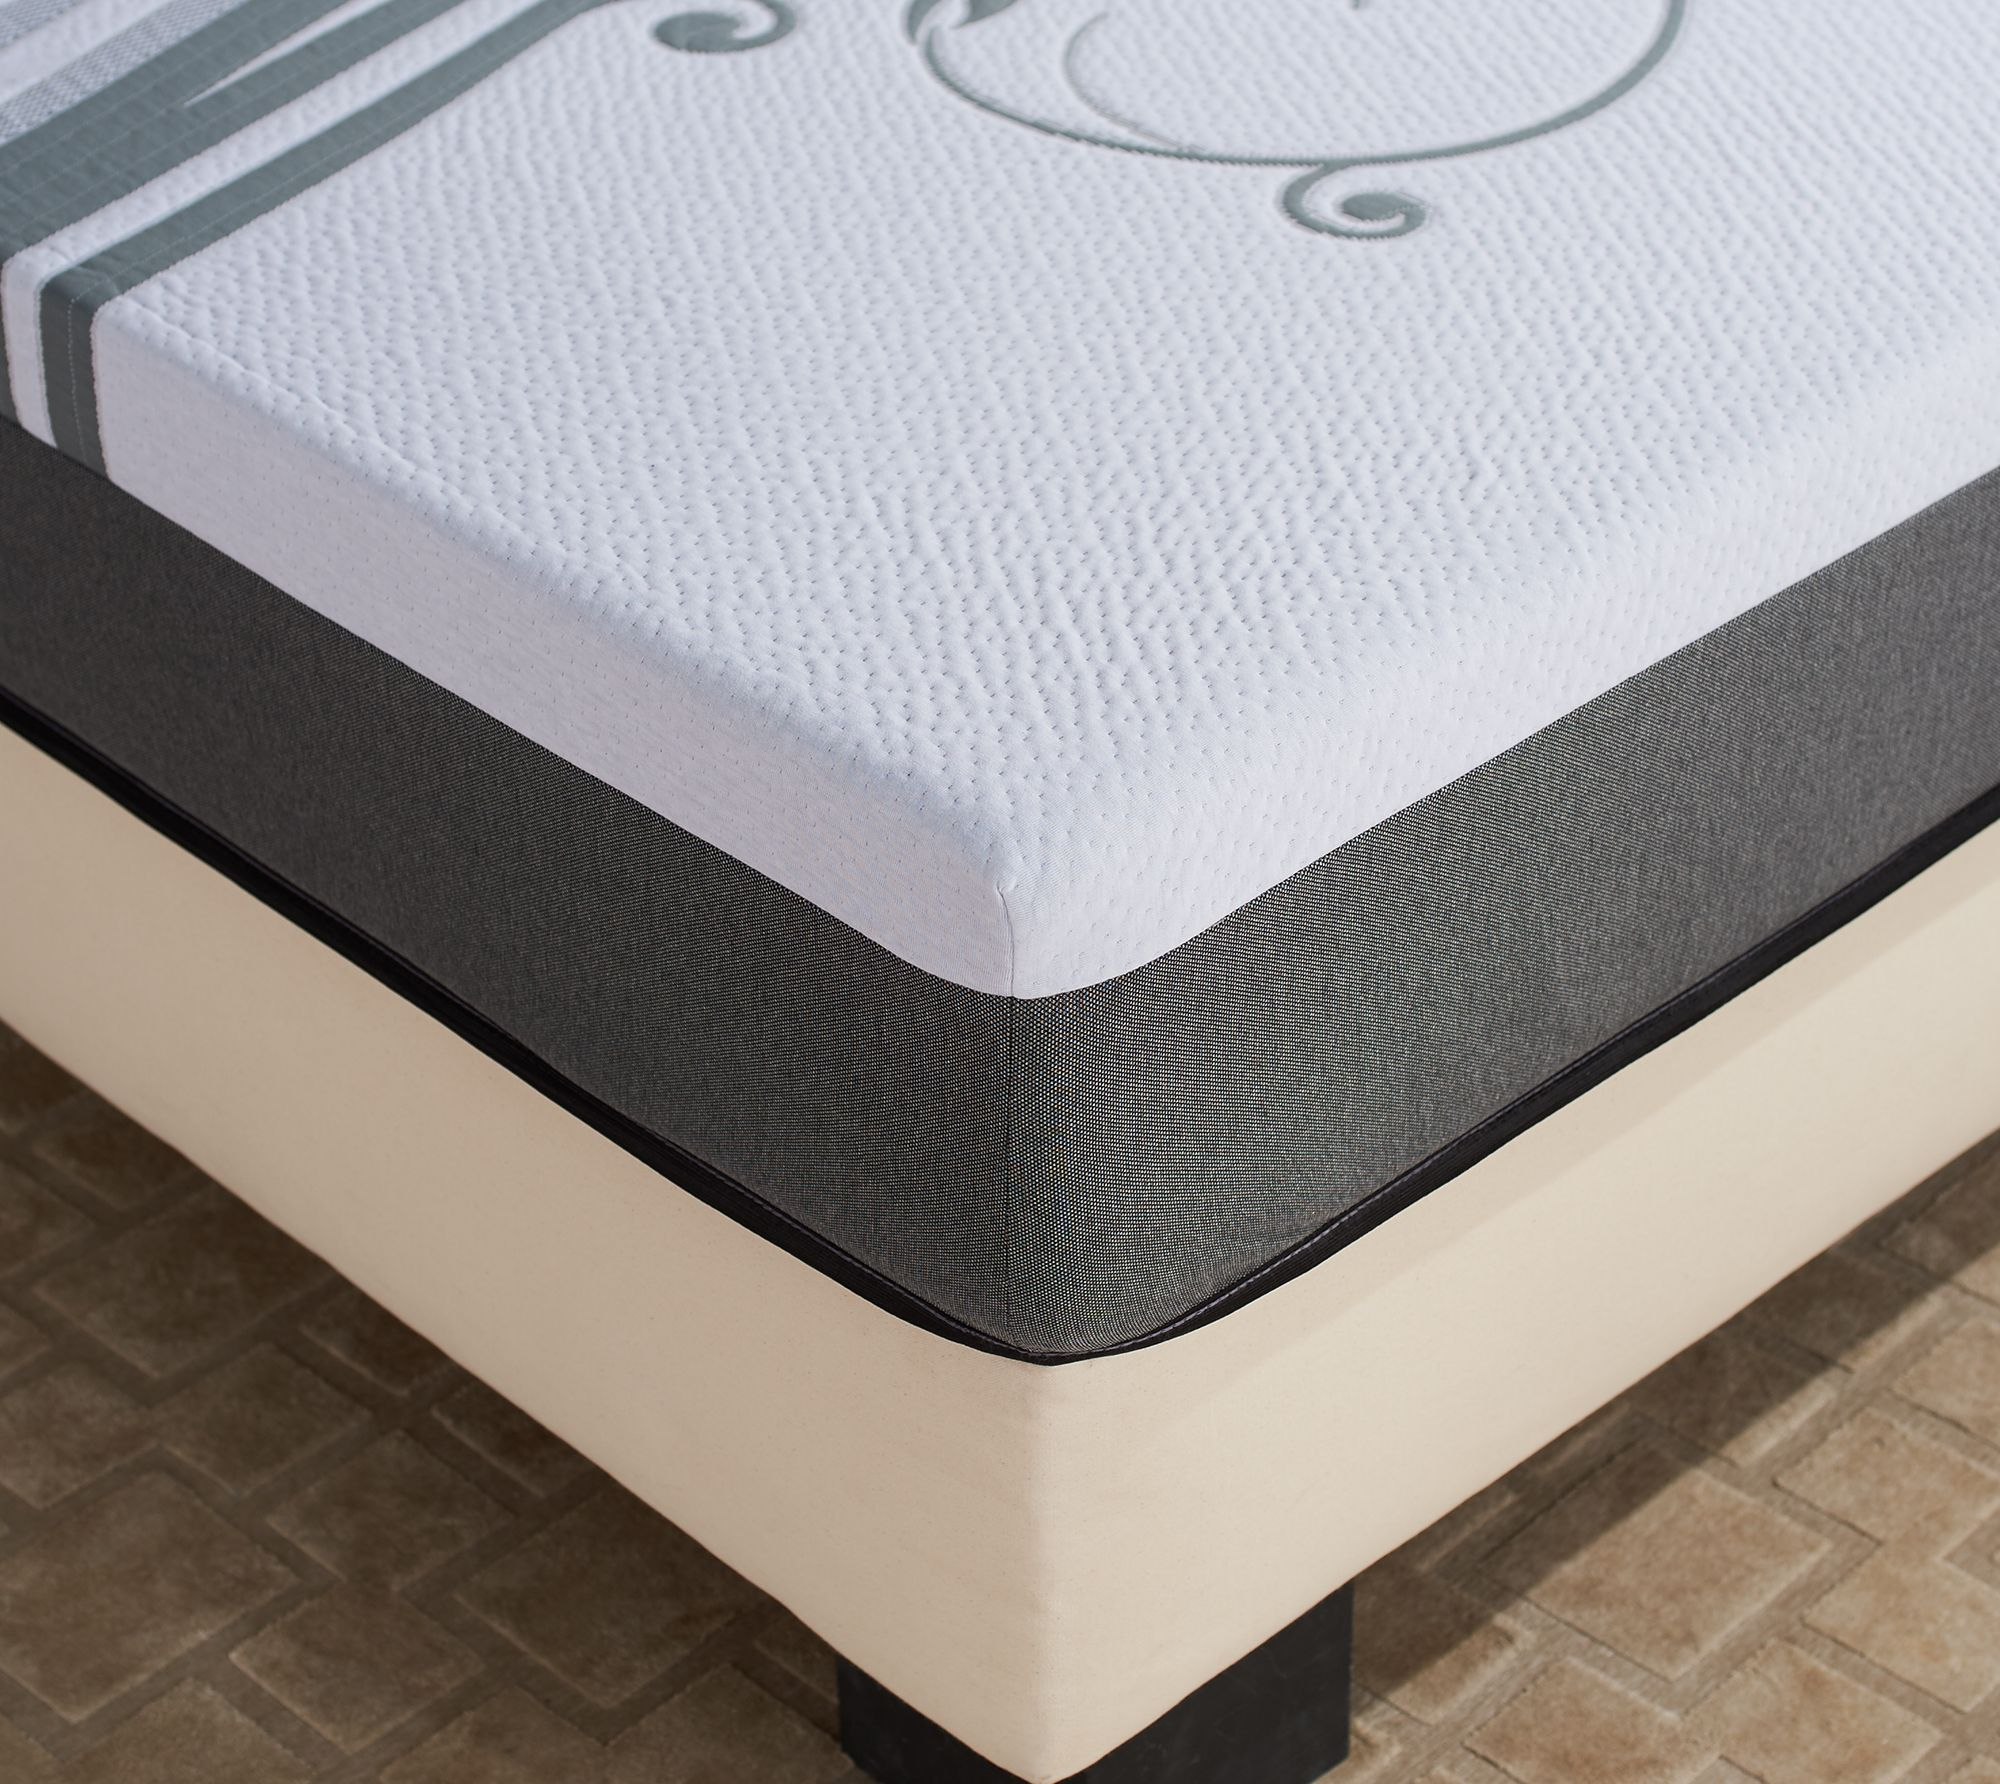 playing field sleep focus mattress level symbol manufacturers the product bed boxed retailer